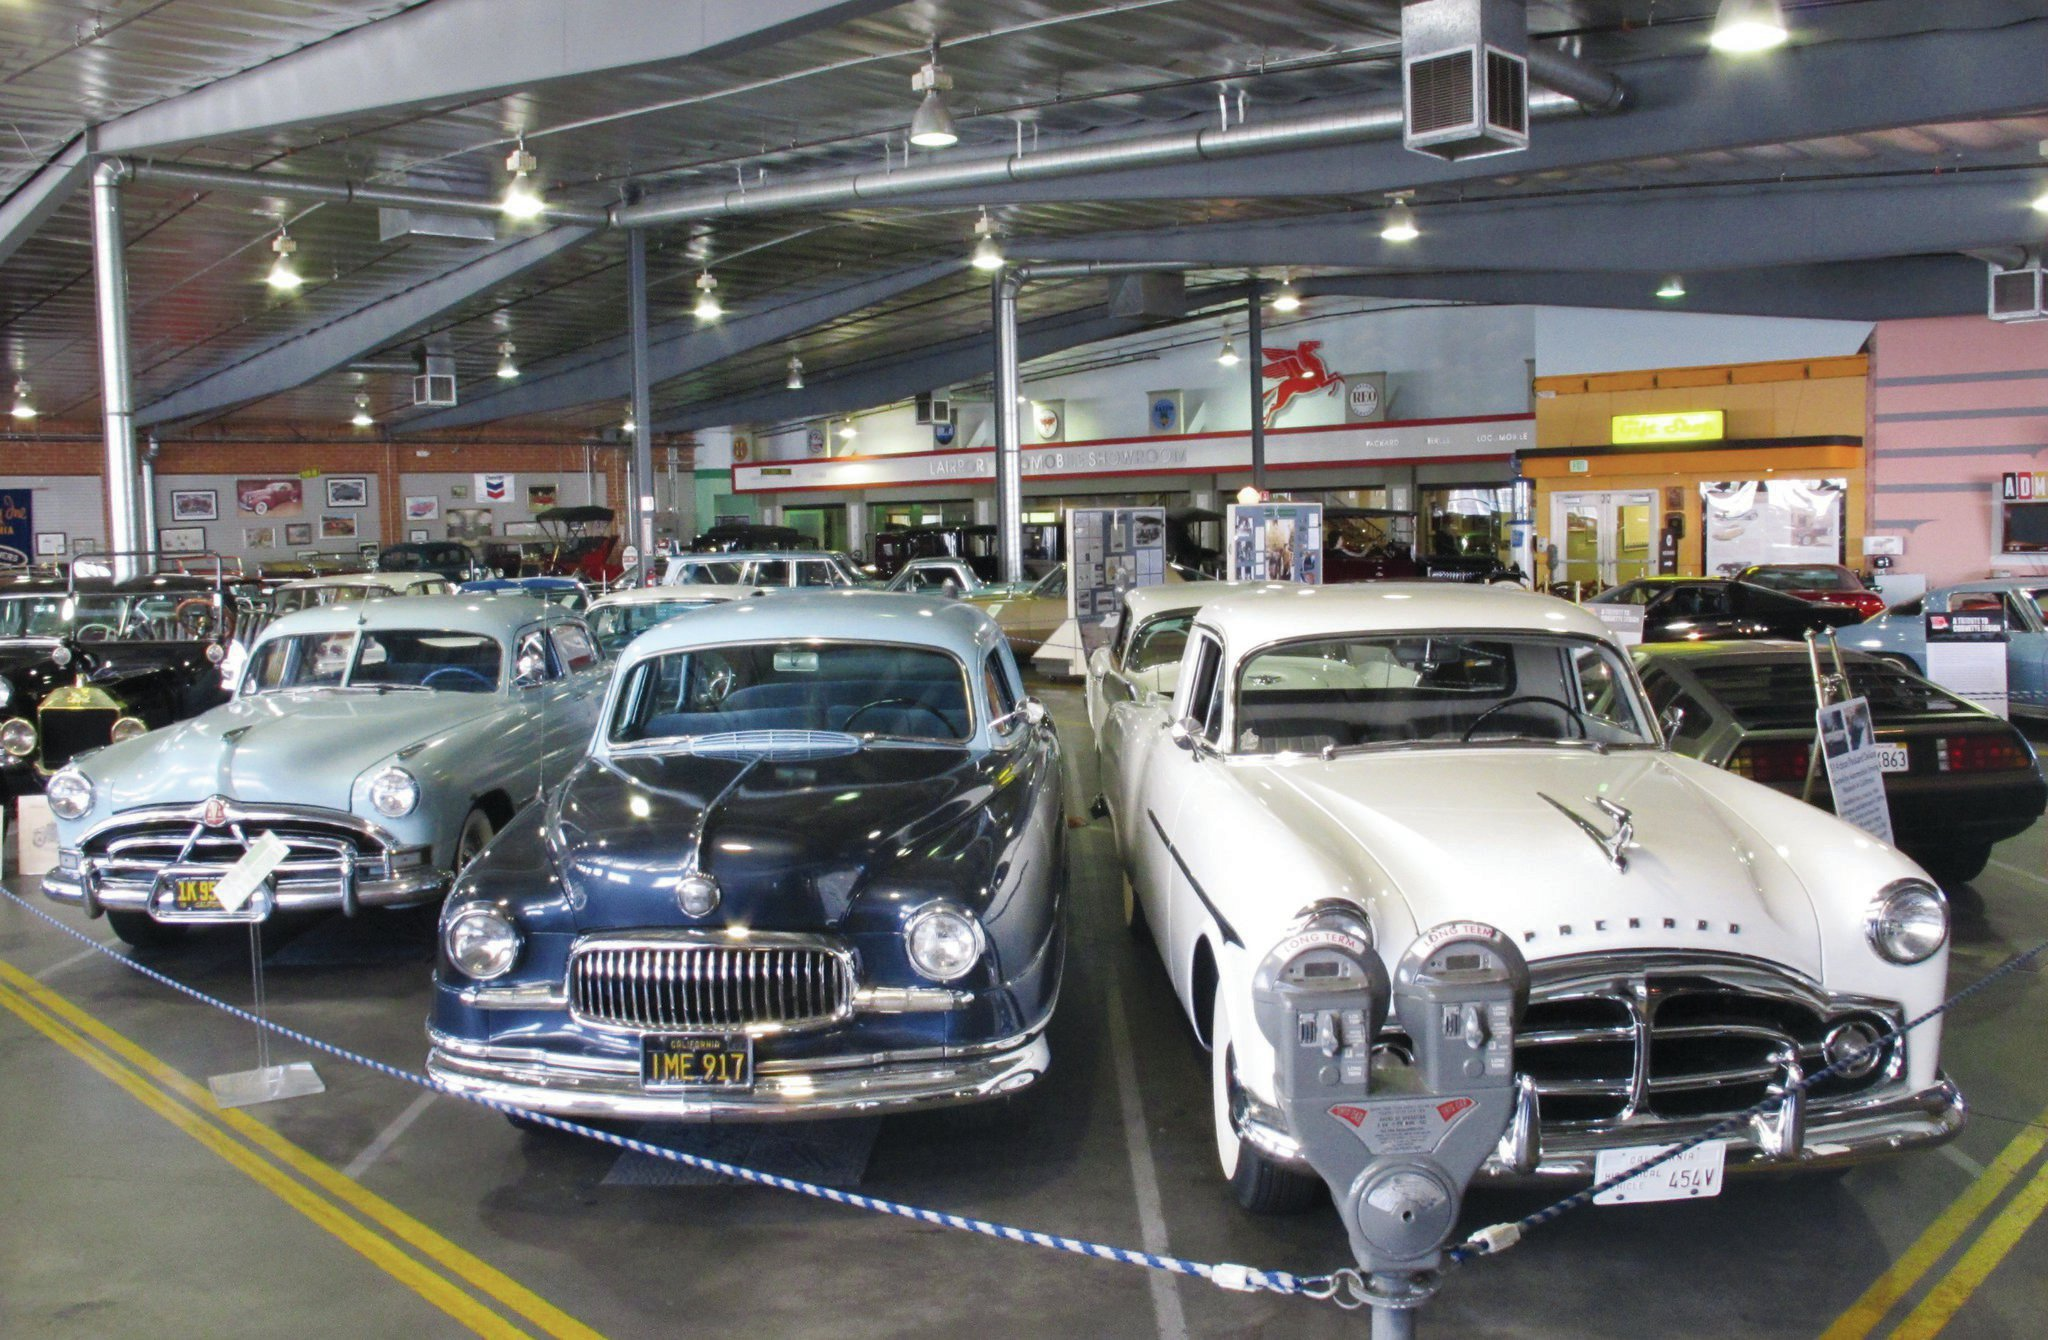 Many of the cars on display at the ADM are special interest cars from the '50s. But the eagle-eyed among you can spot the diversity on display here; bookending these bruisers are a DeLorean on the right and a Model T on the left.